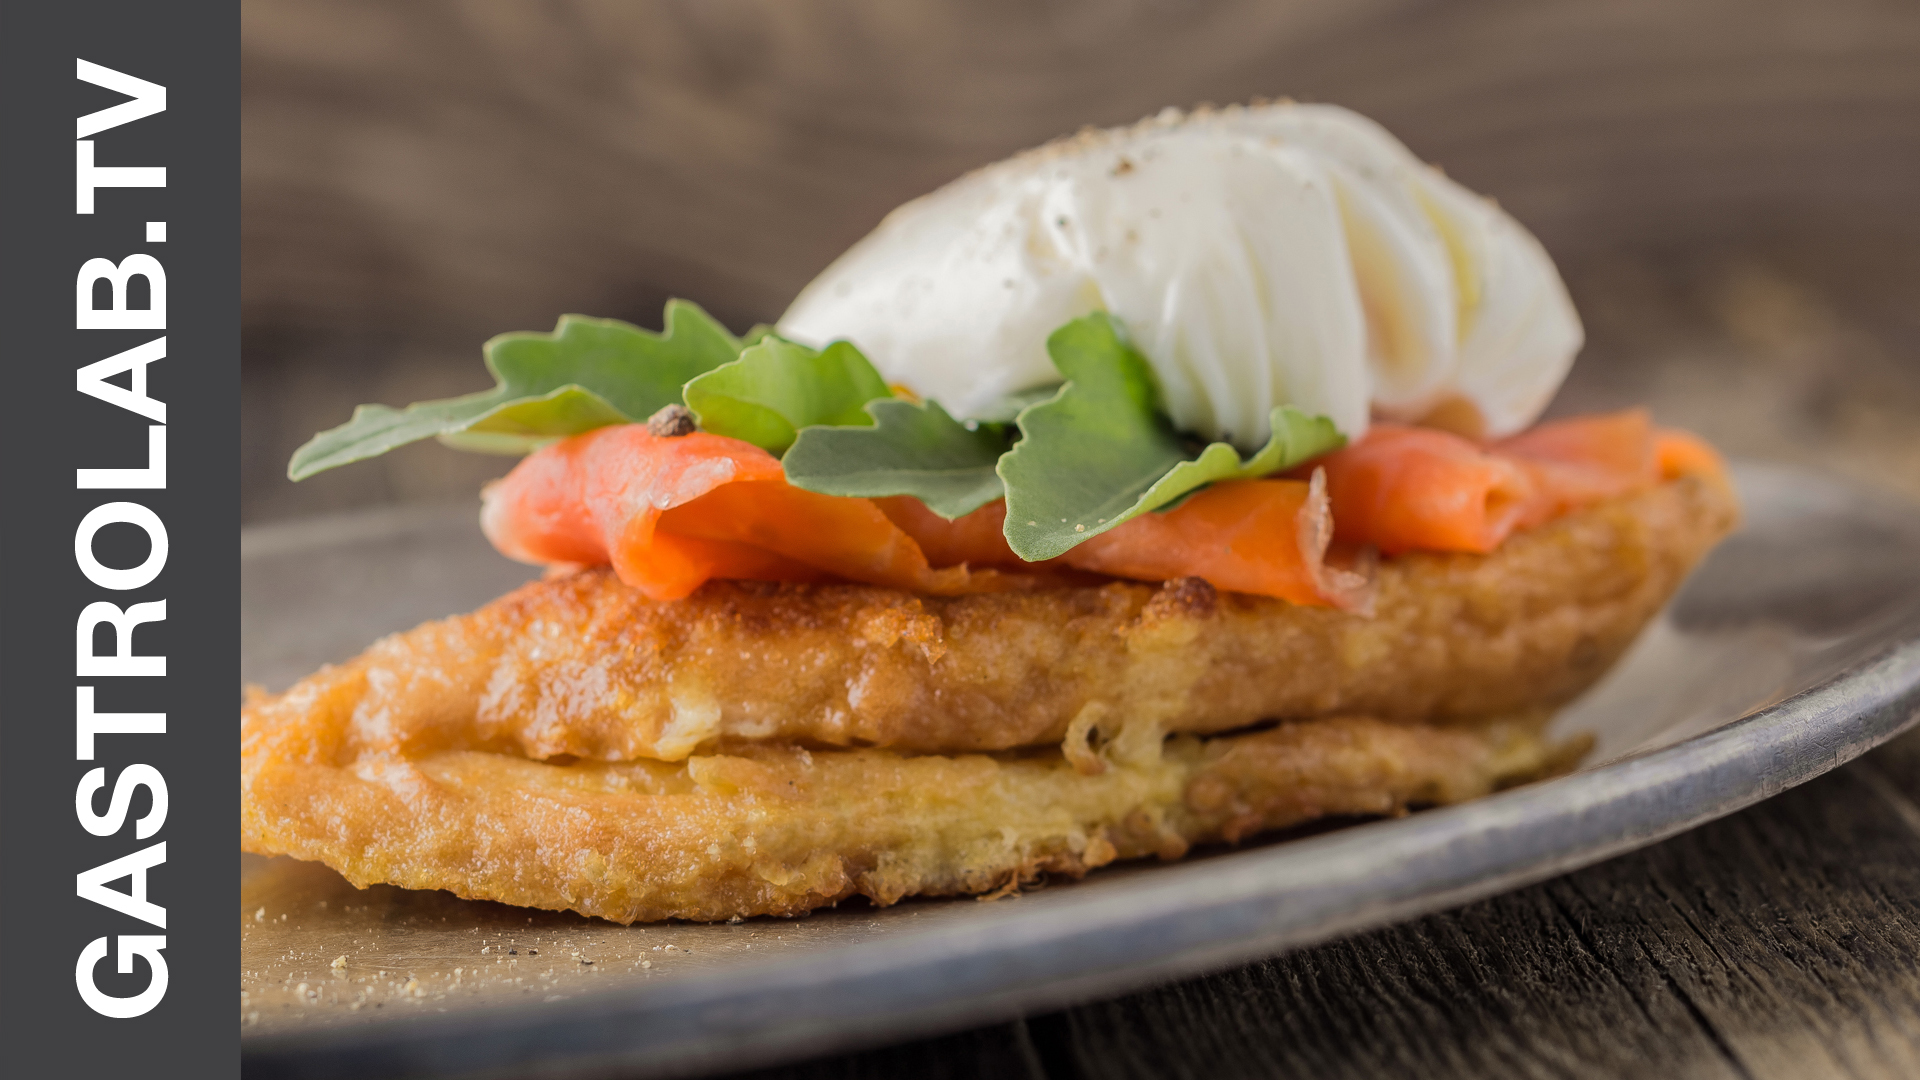 How to Make French Toast With Smoked Salmon and Poached Egg